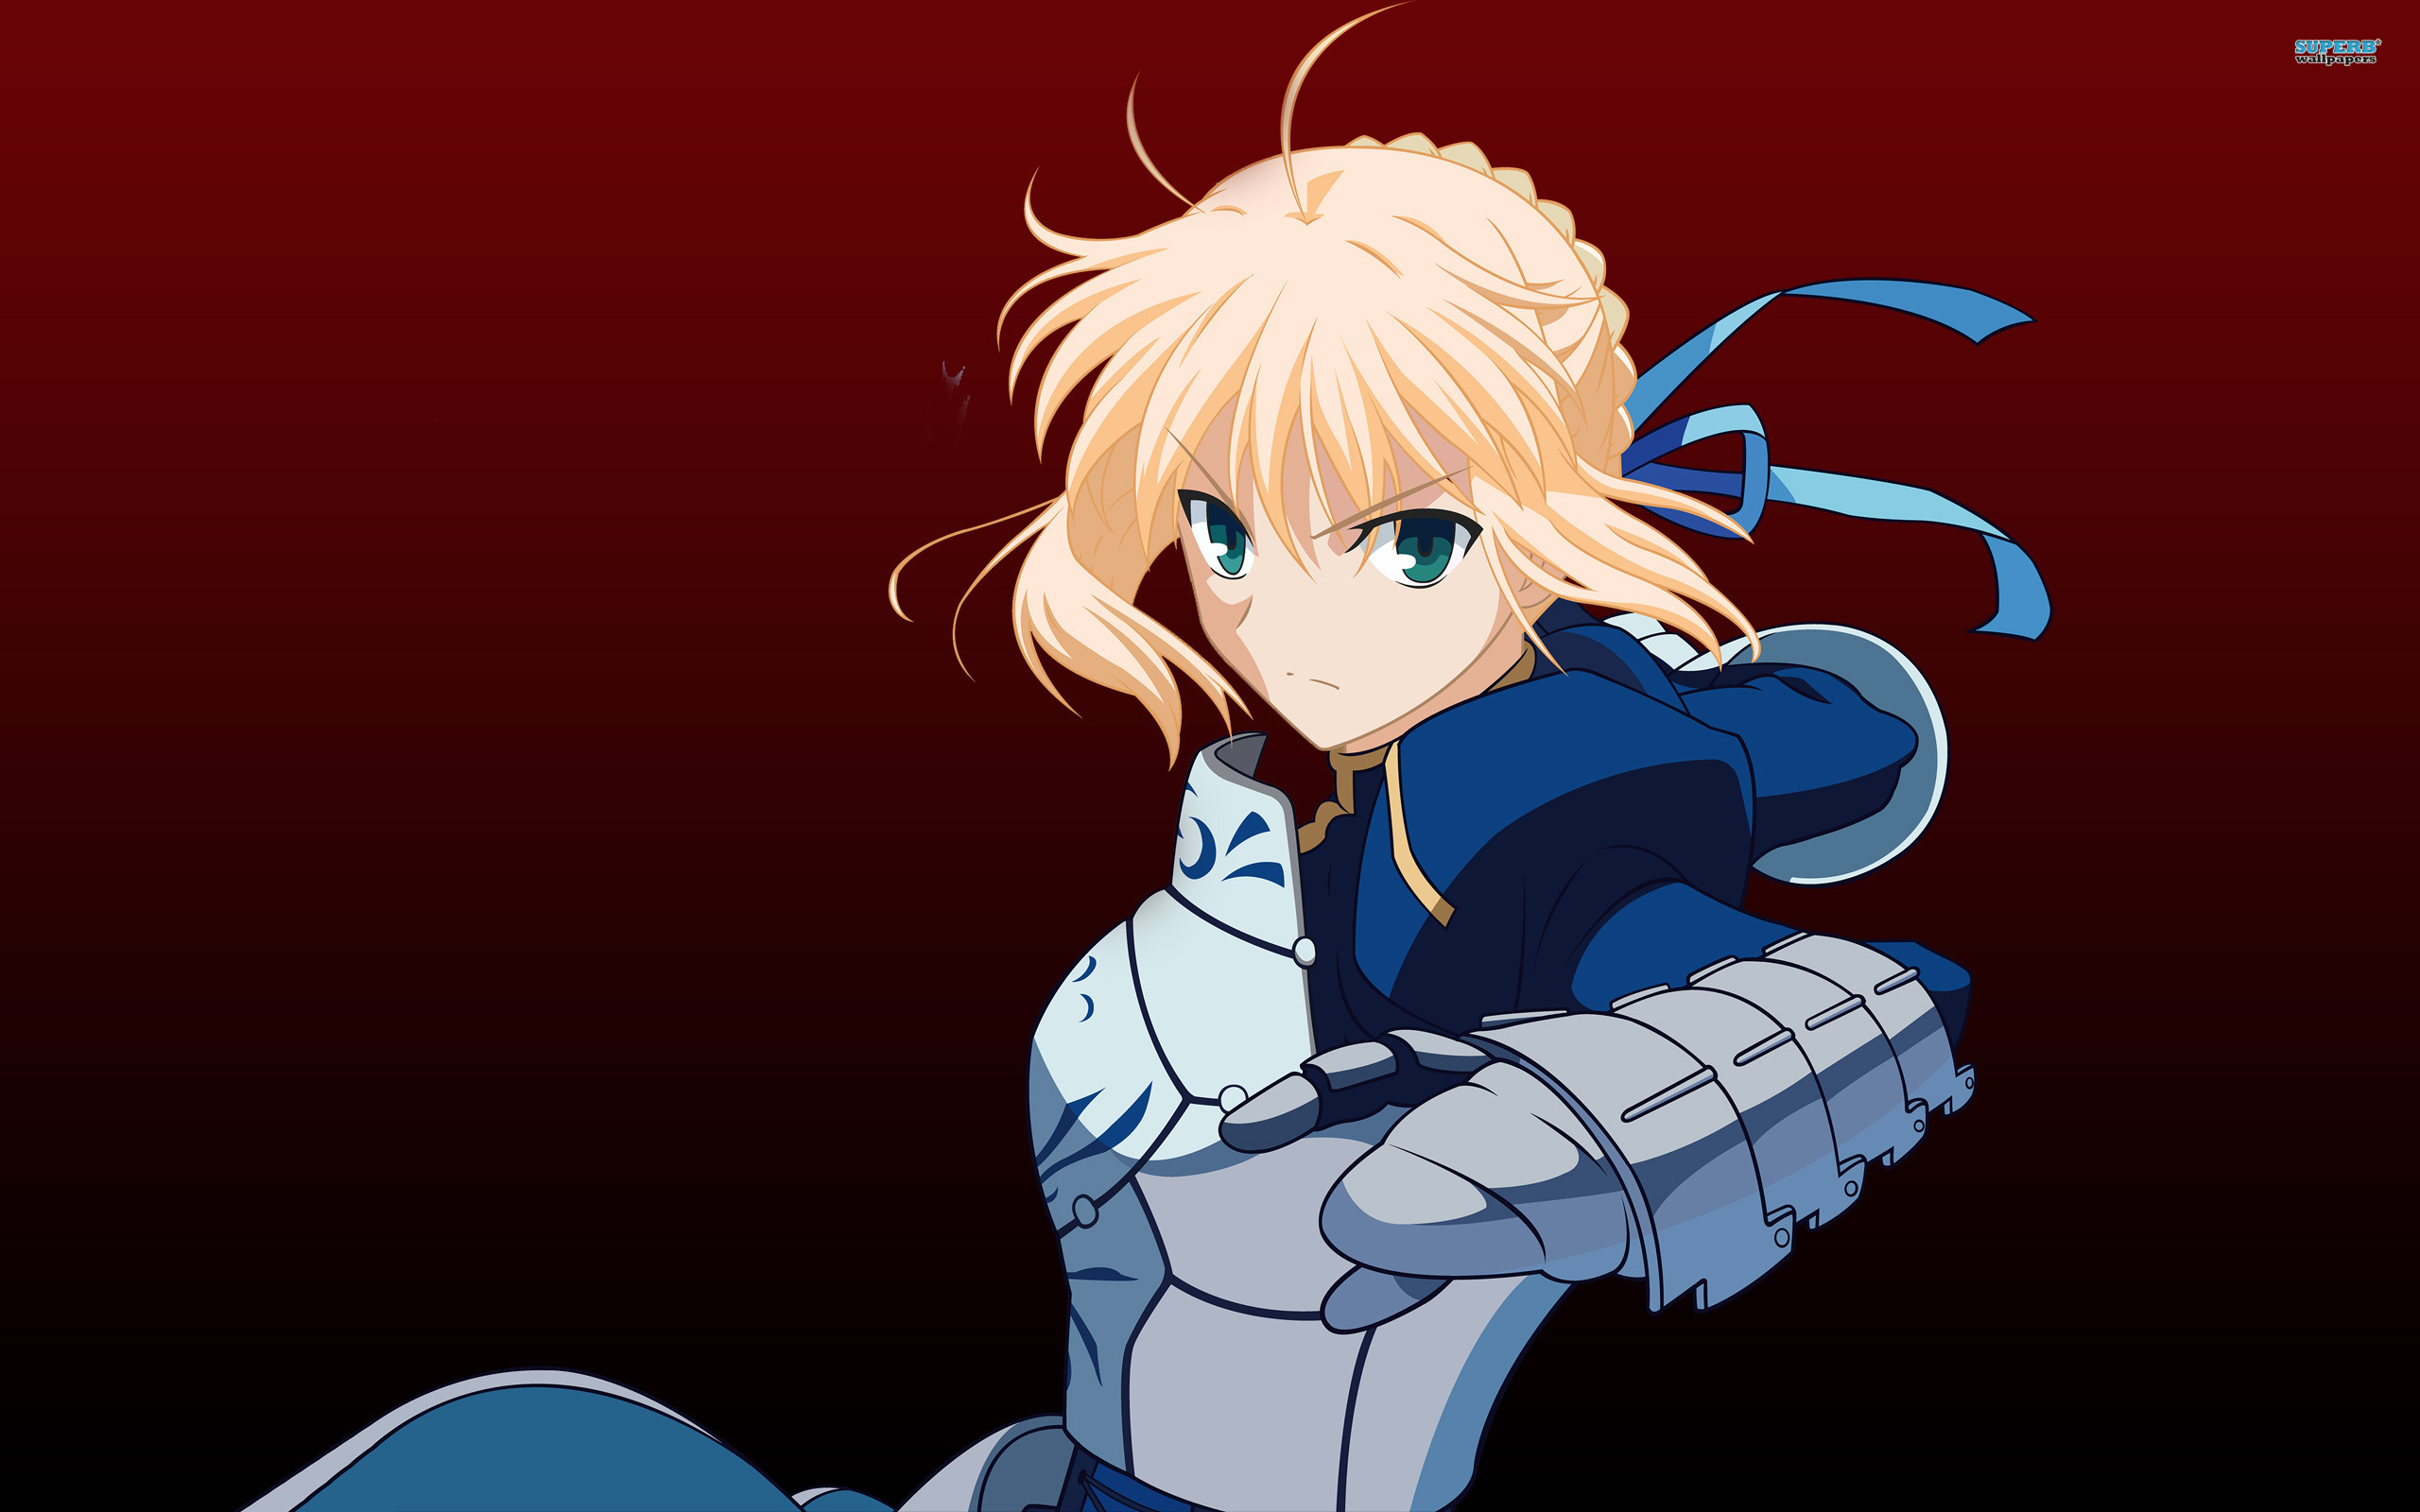 Fairy Tail Girls Wallpapers Fate Stay Night Wallpaper Saber 25 Cool Hd Wallpaper